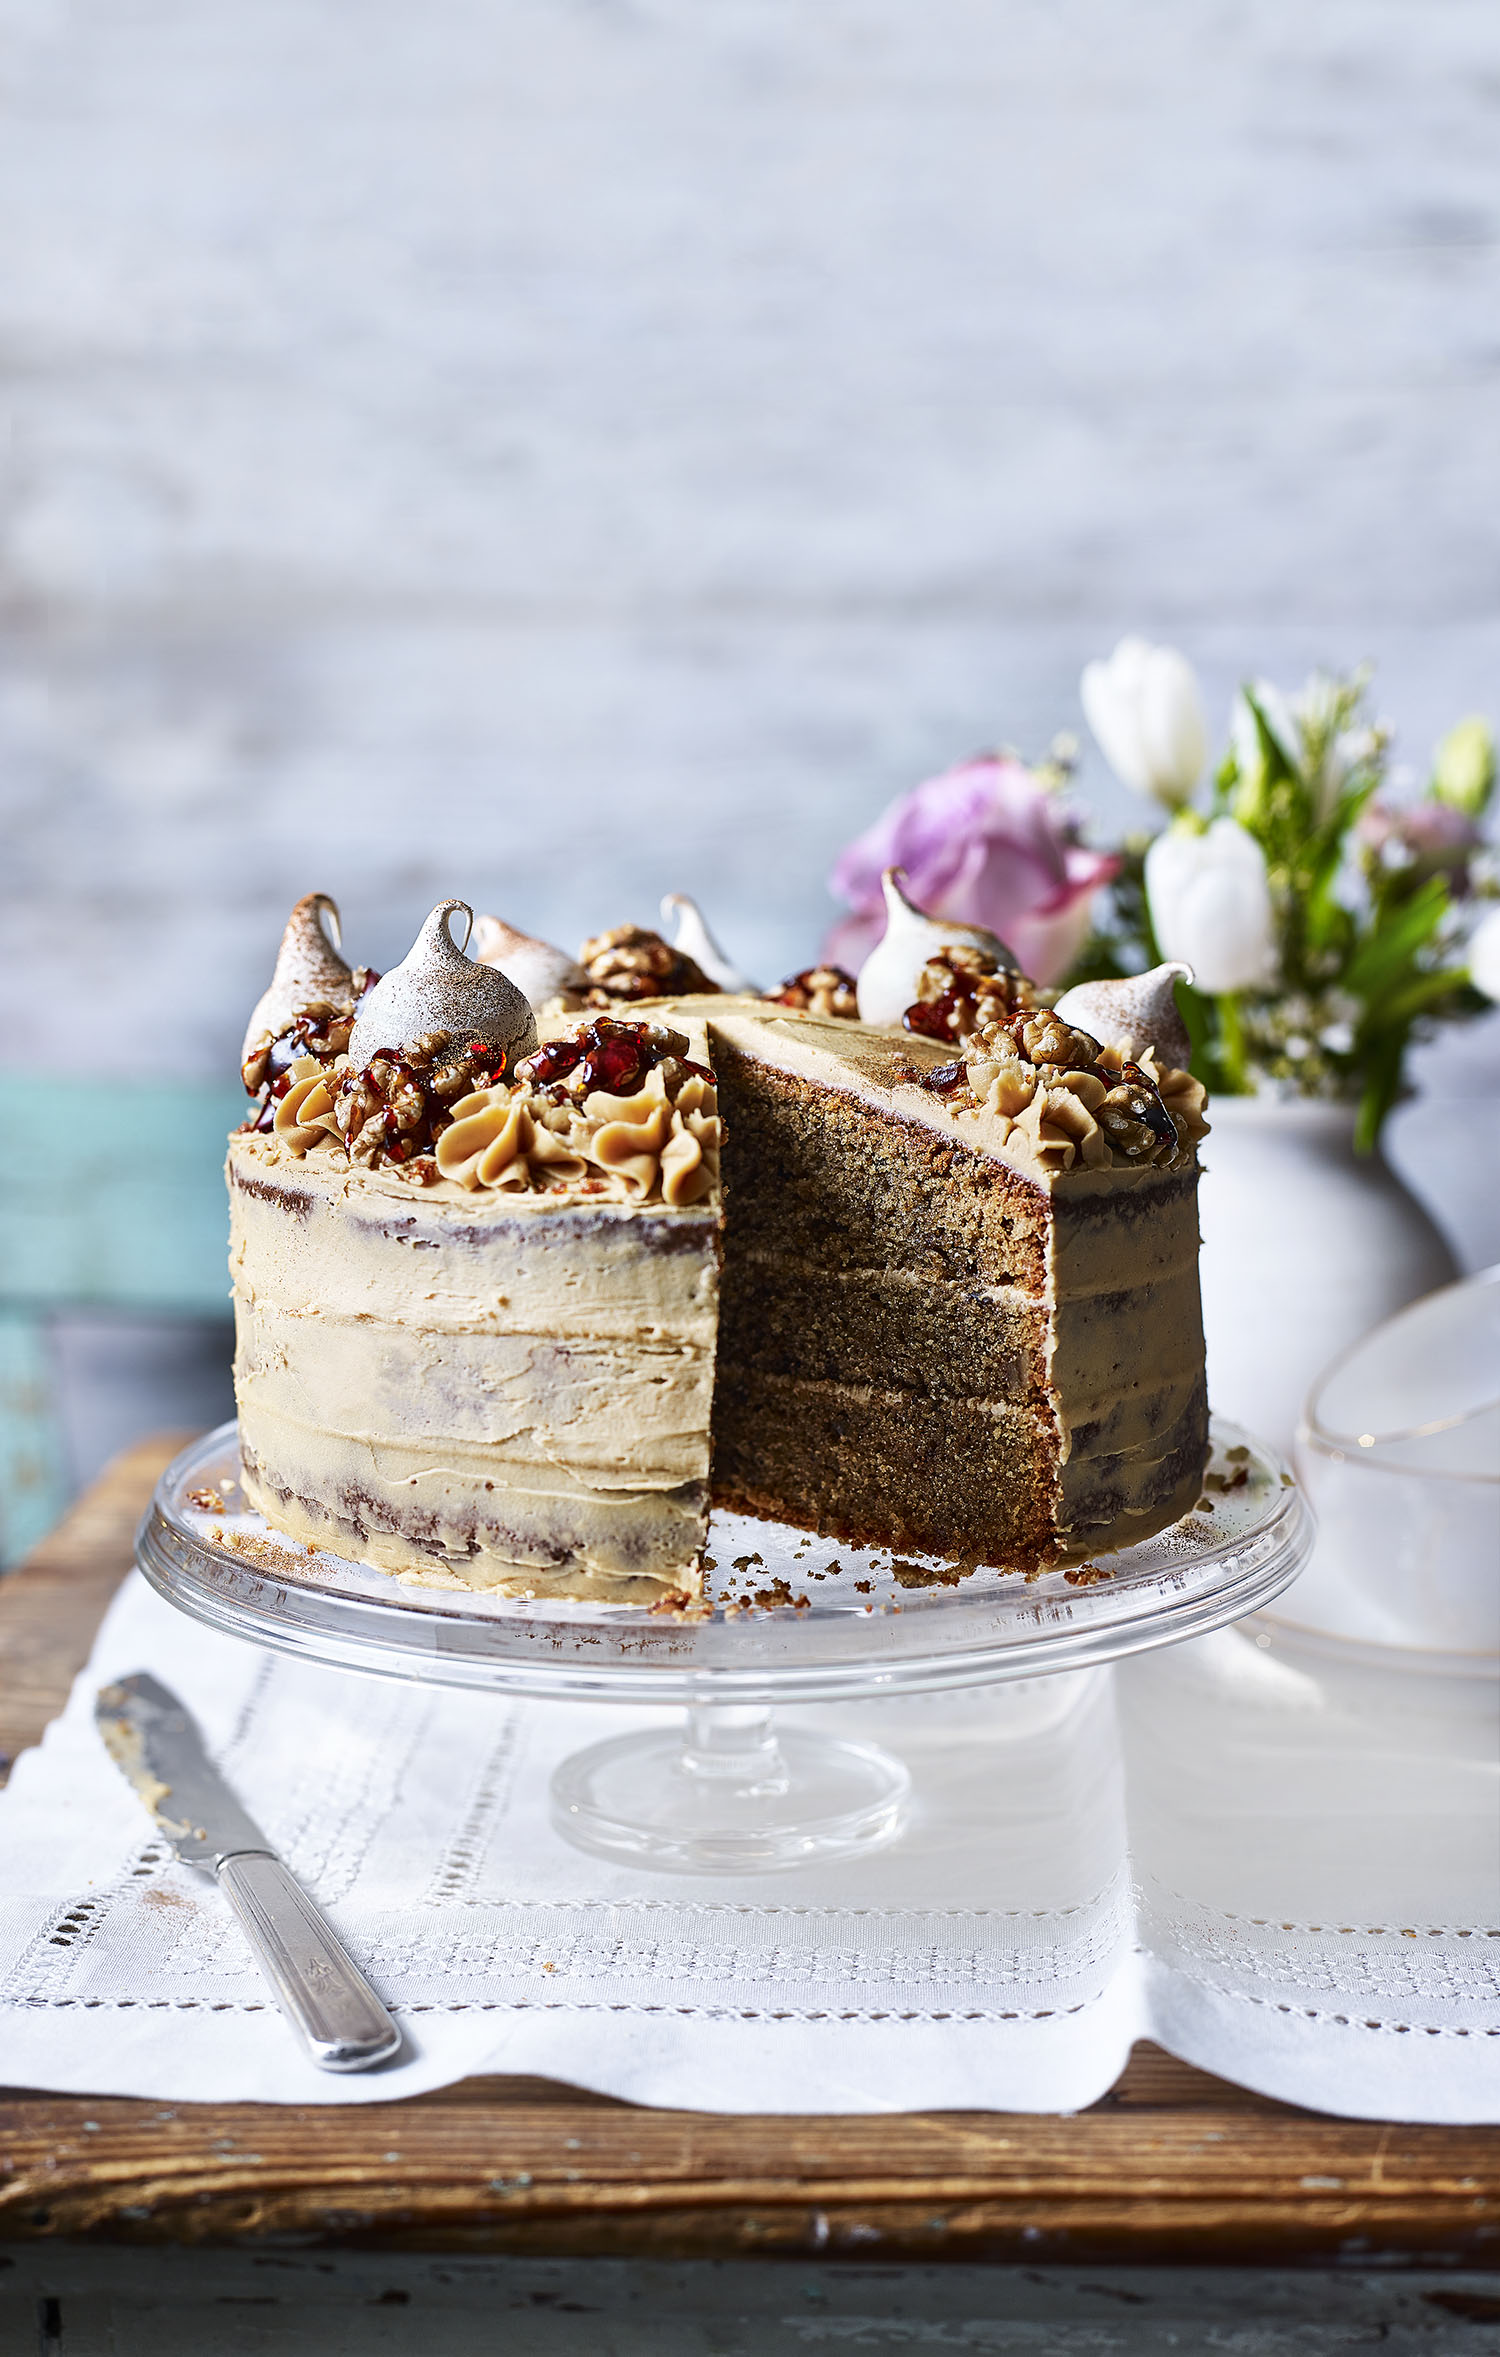 Coffee & Walnut Cake Photograph Toby Scott Prop Styling Davina Perkins Recipe Lizzie Fox